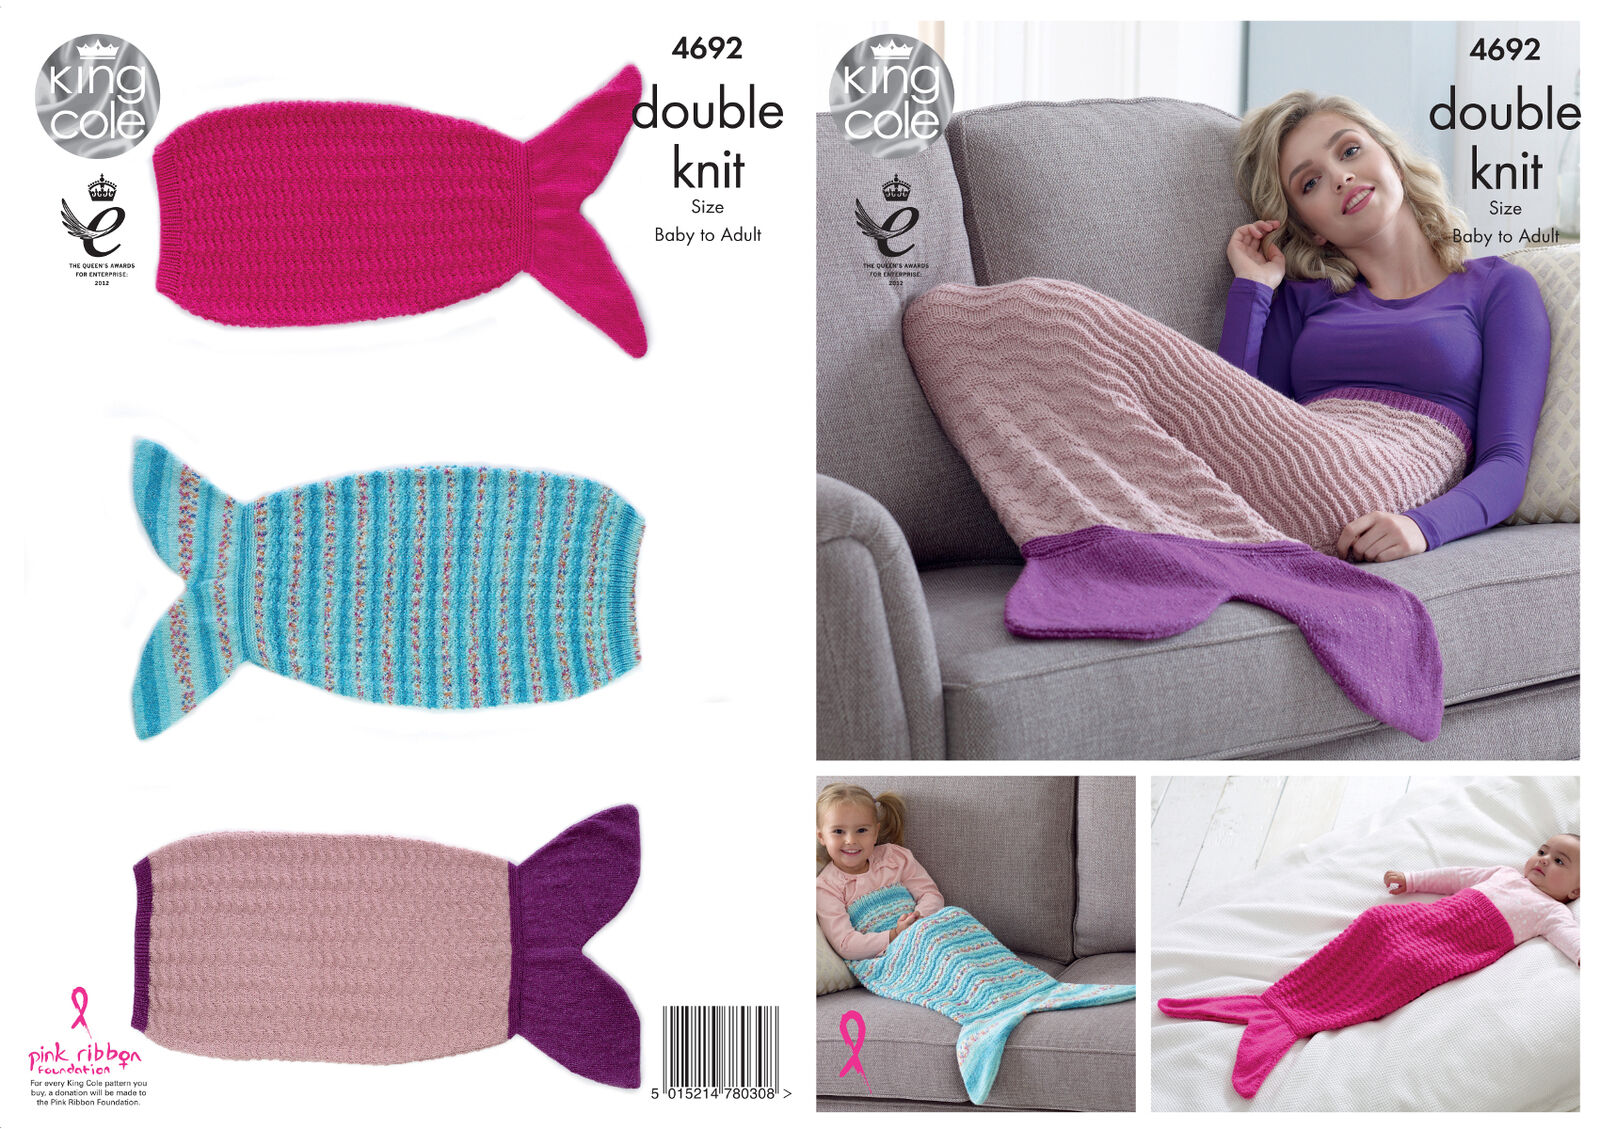 Knitting Pattern Mermaid Tail For Babies : Mermaid Tail Blankets Knitting Pattern knit Baby - Adult Sizes King Cole DK 4...